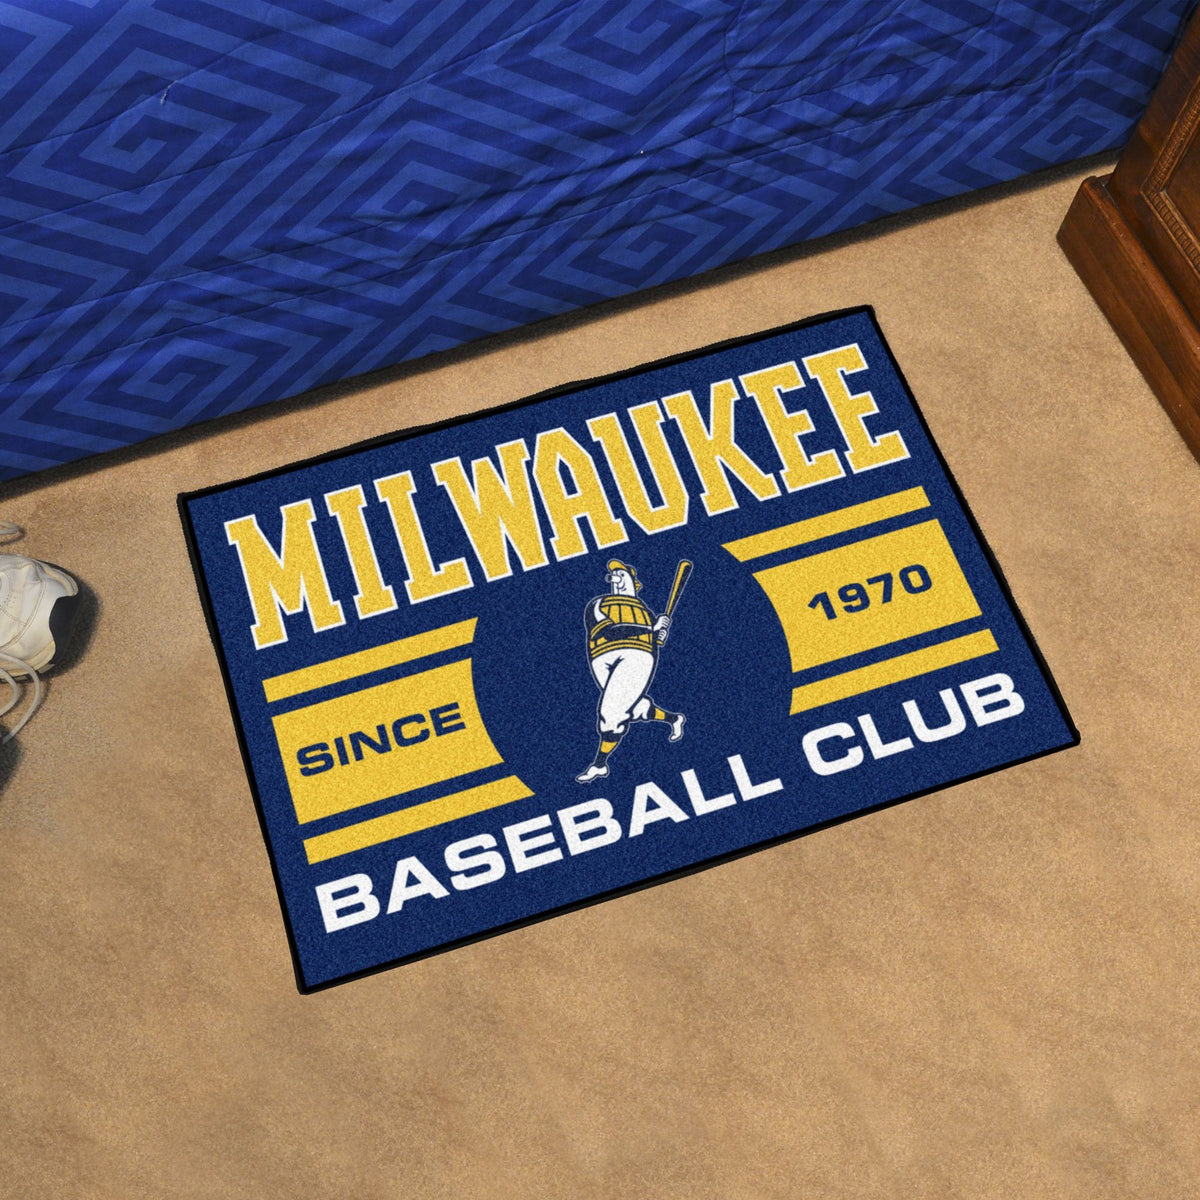 MLB - Starter Mat MLB Mats, Rectangular Mats, Starter Mat, MLB, Home Fan Mats Milwaukee Brewers 5